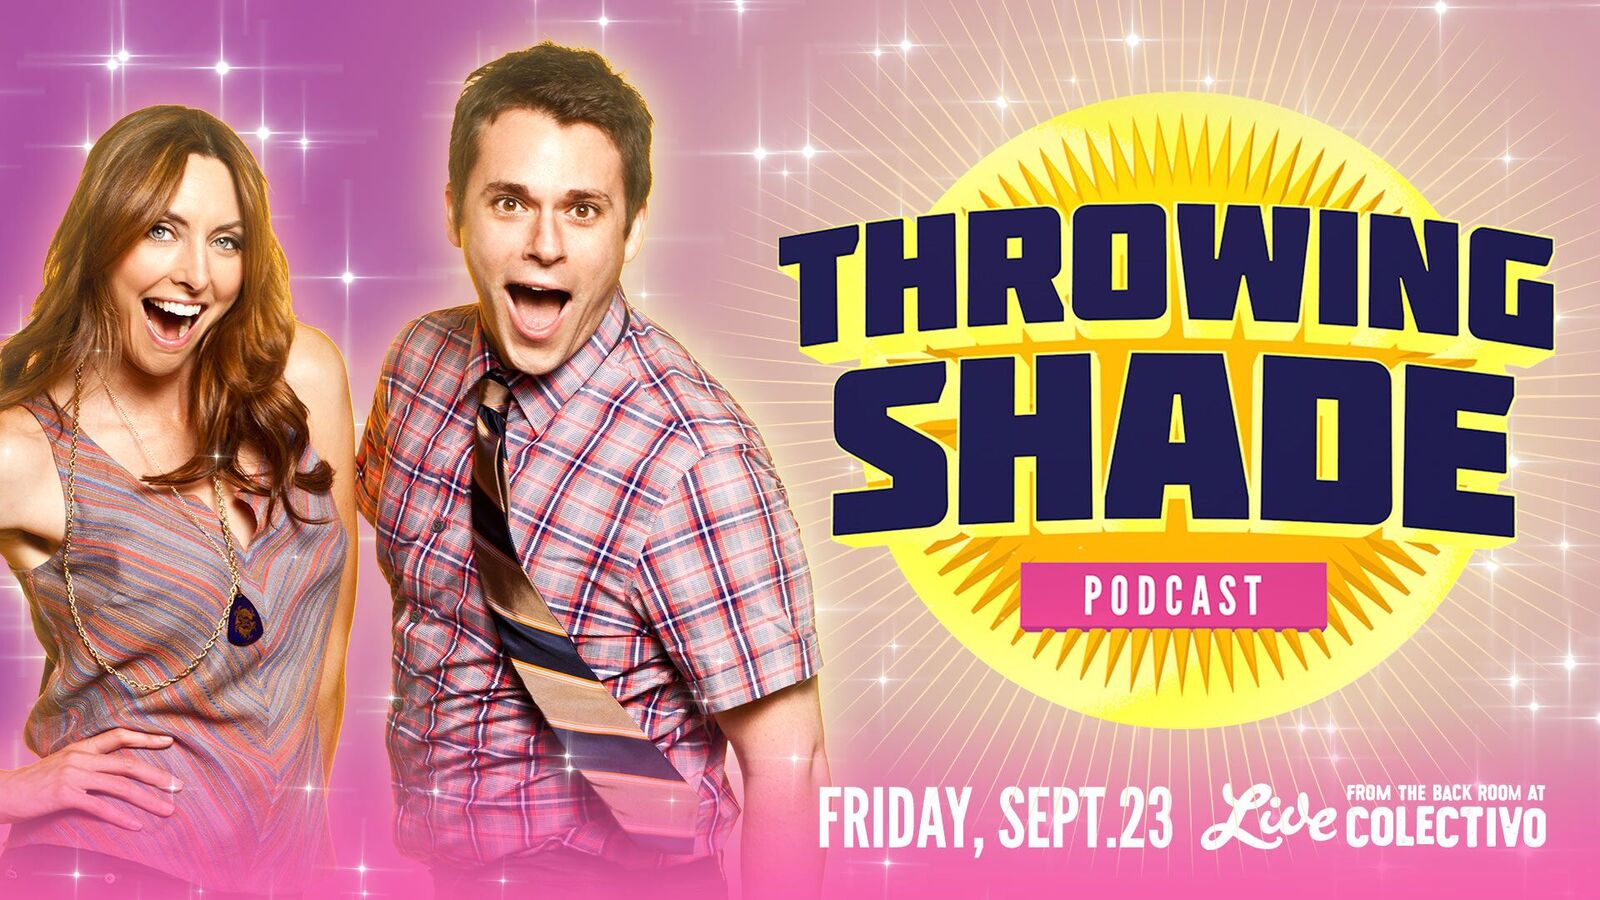 Throwing Shade podcast, pop culture, Music